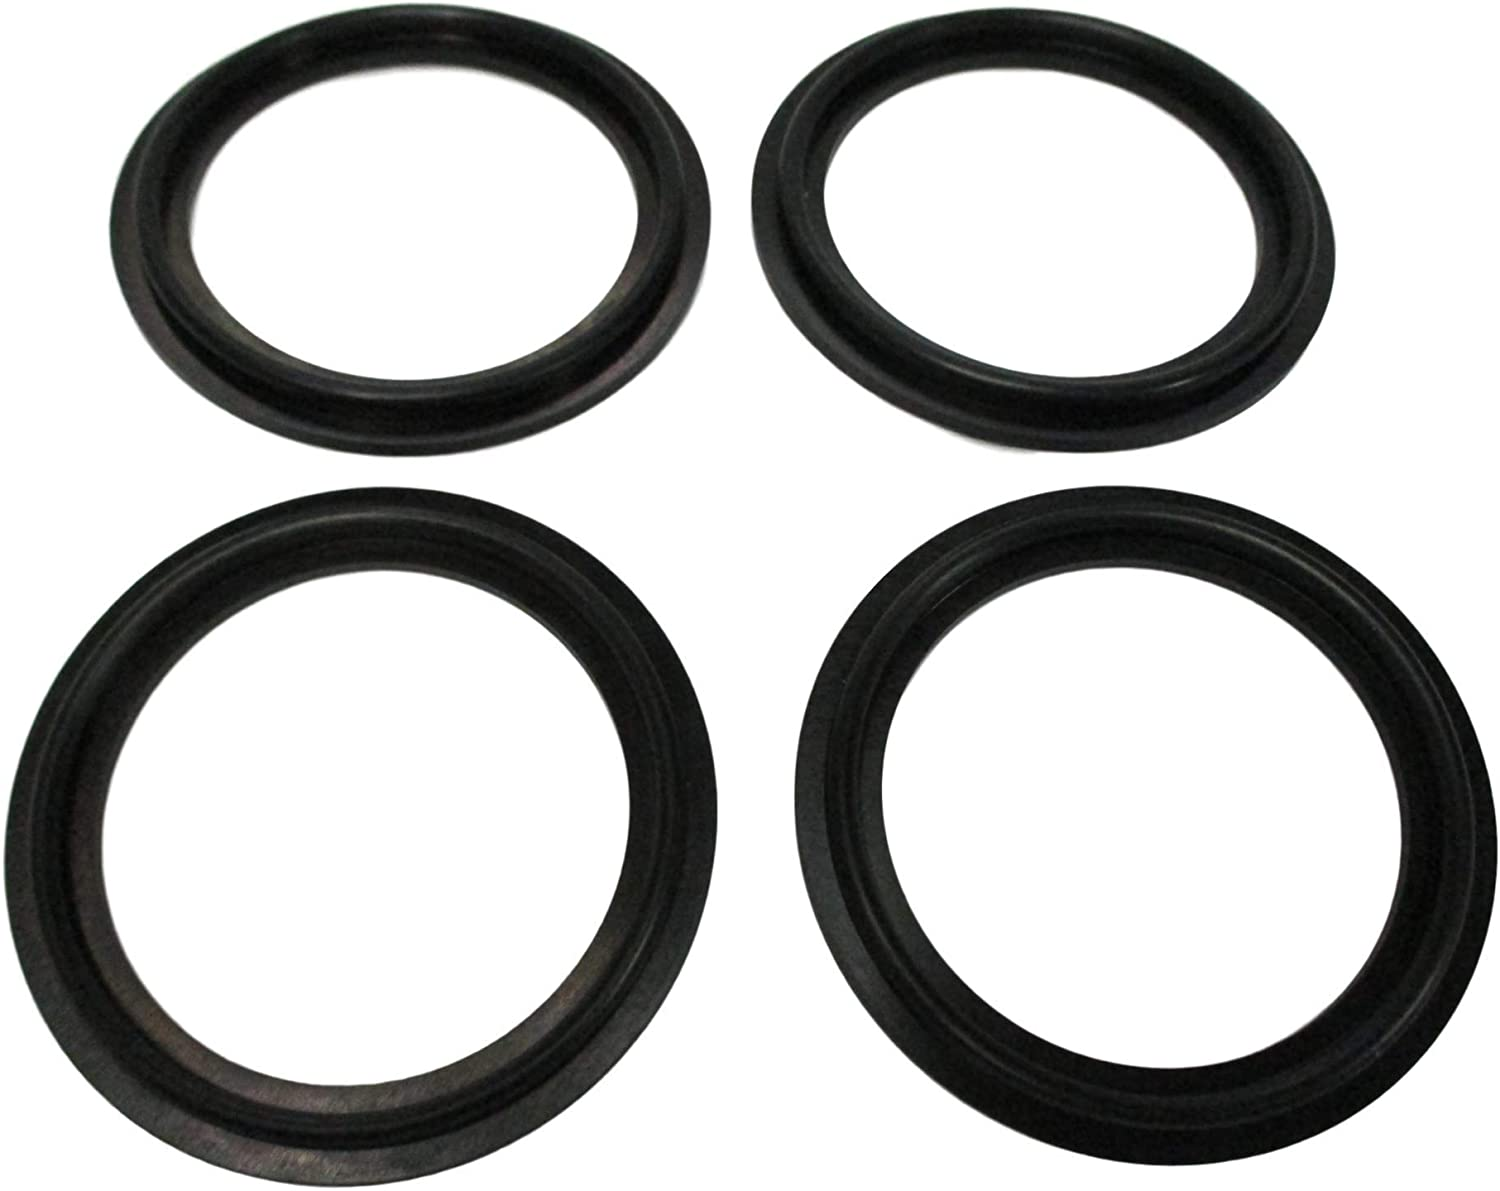 4X 2 Spa Hot Tub National uniform free shipping Pump Heater to with Video Gasket How Fort Worth Mall Union